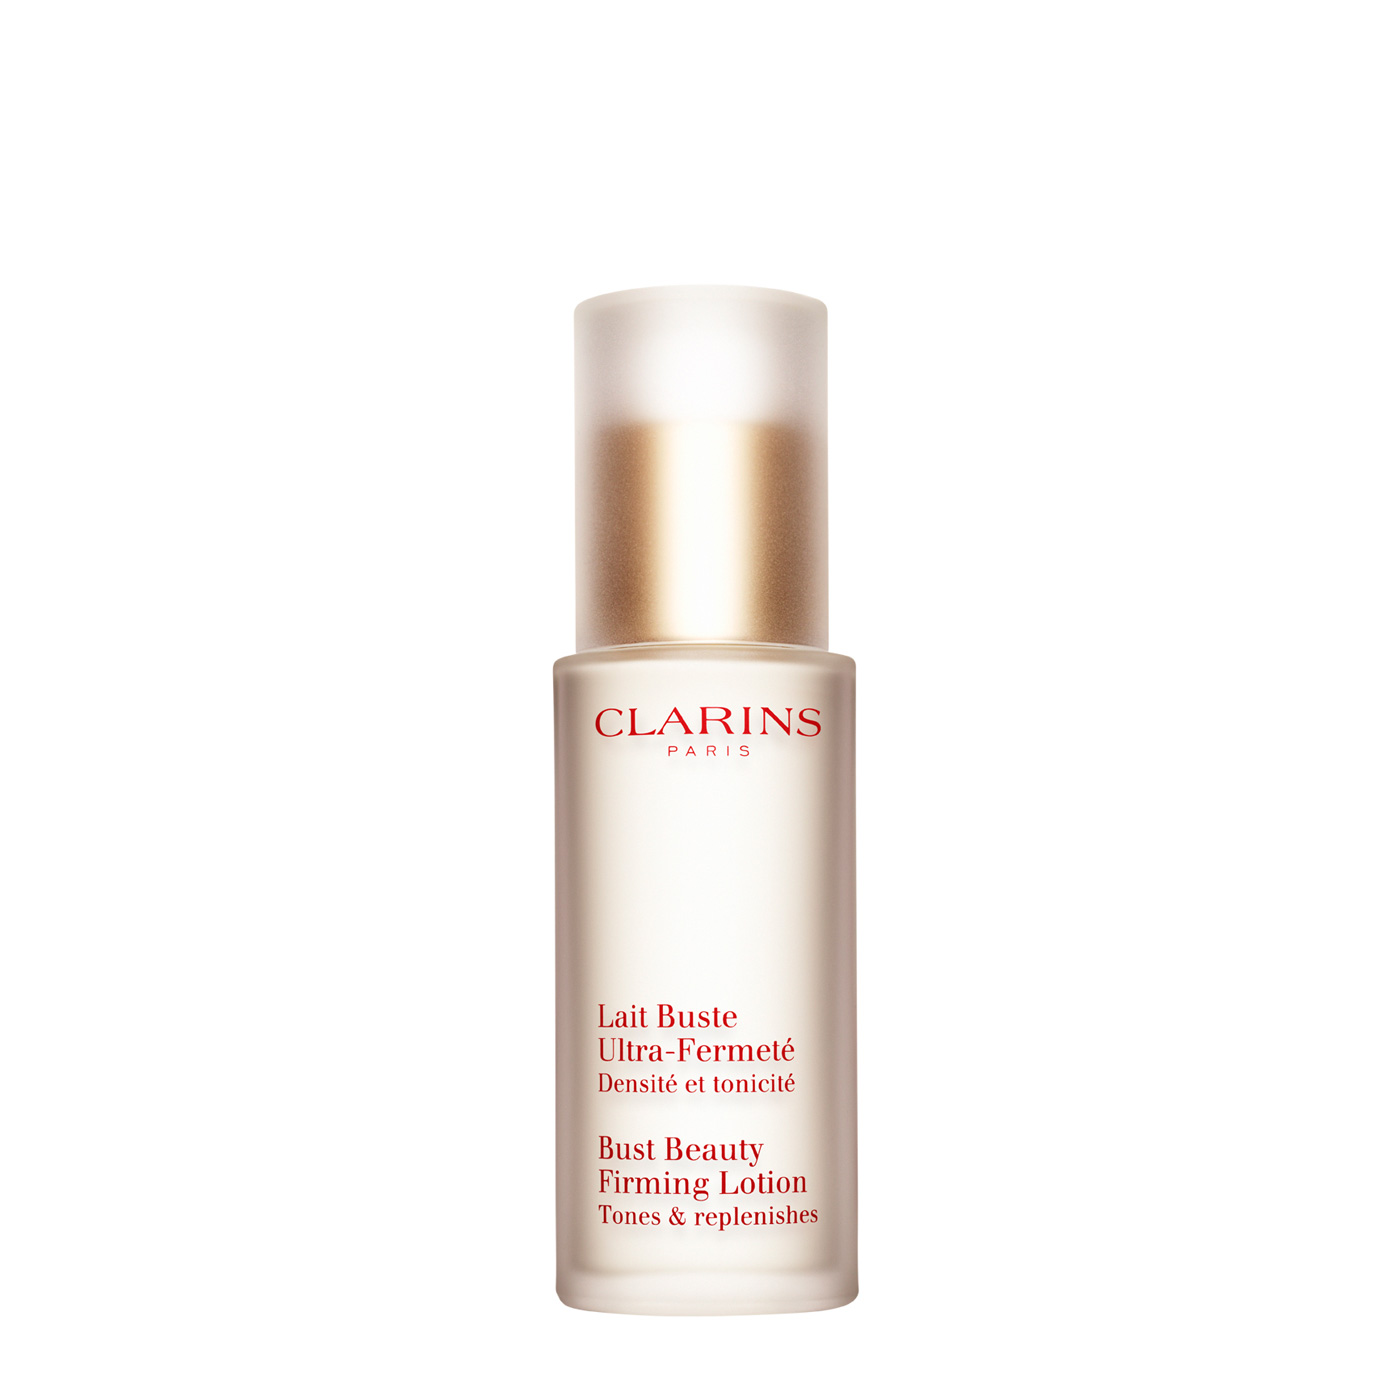 bust beauty firming lotion firm tone clarins. Black Bedroom Furniture Sets. Home Design Ideas